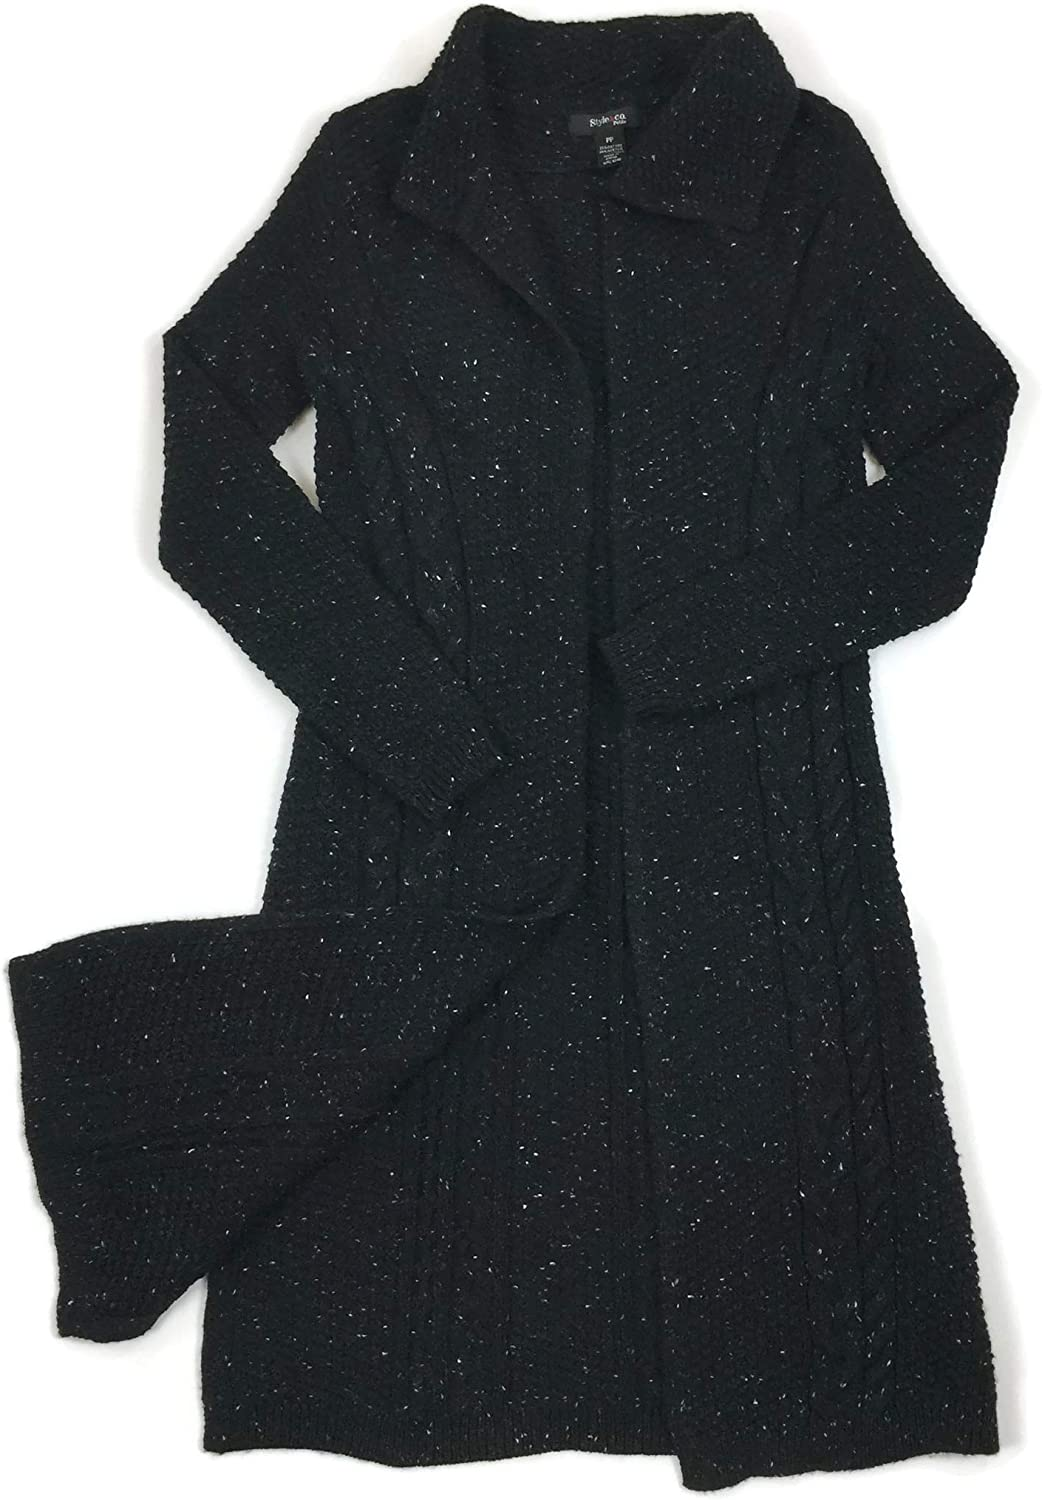 Style & Co. Cardigan Black Cable Knit Collared Completer Sweater Size Petite PP